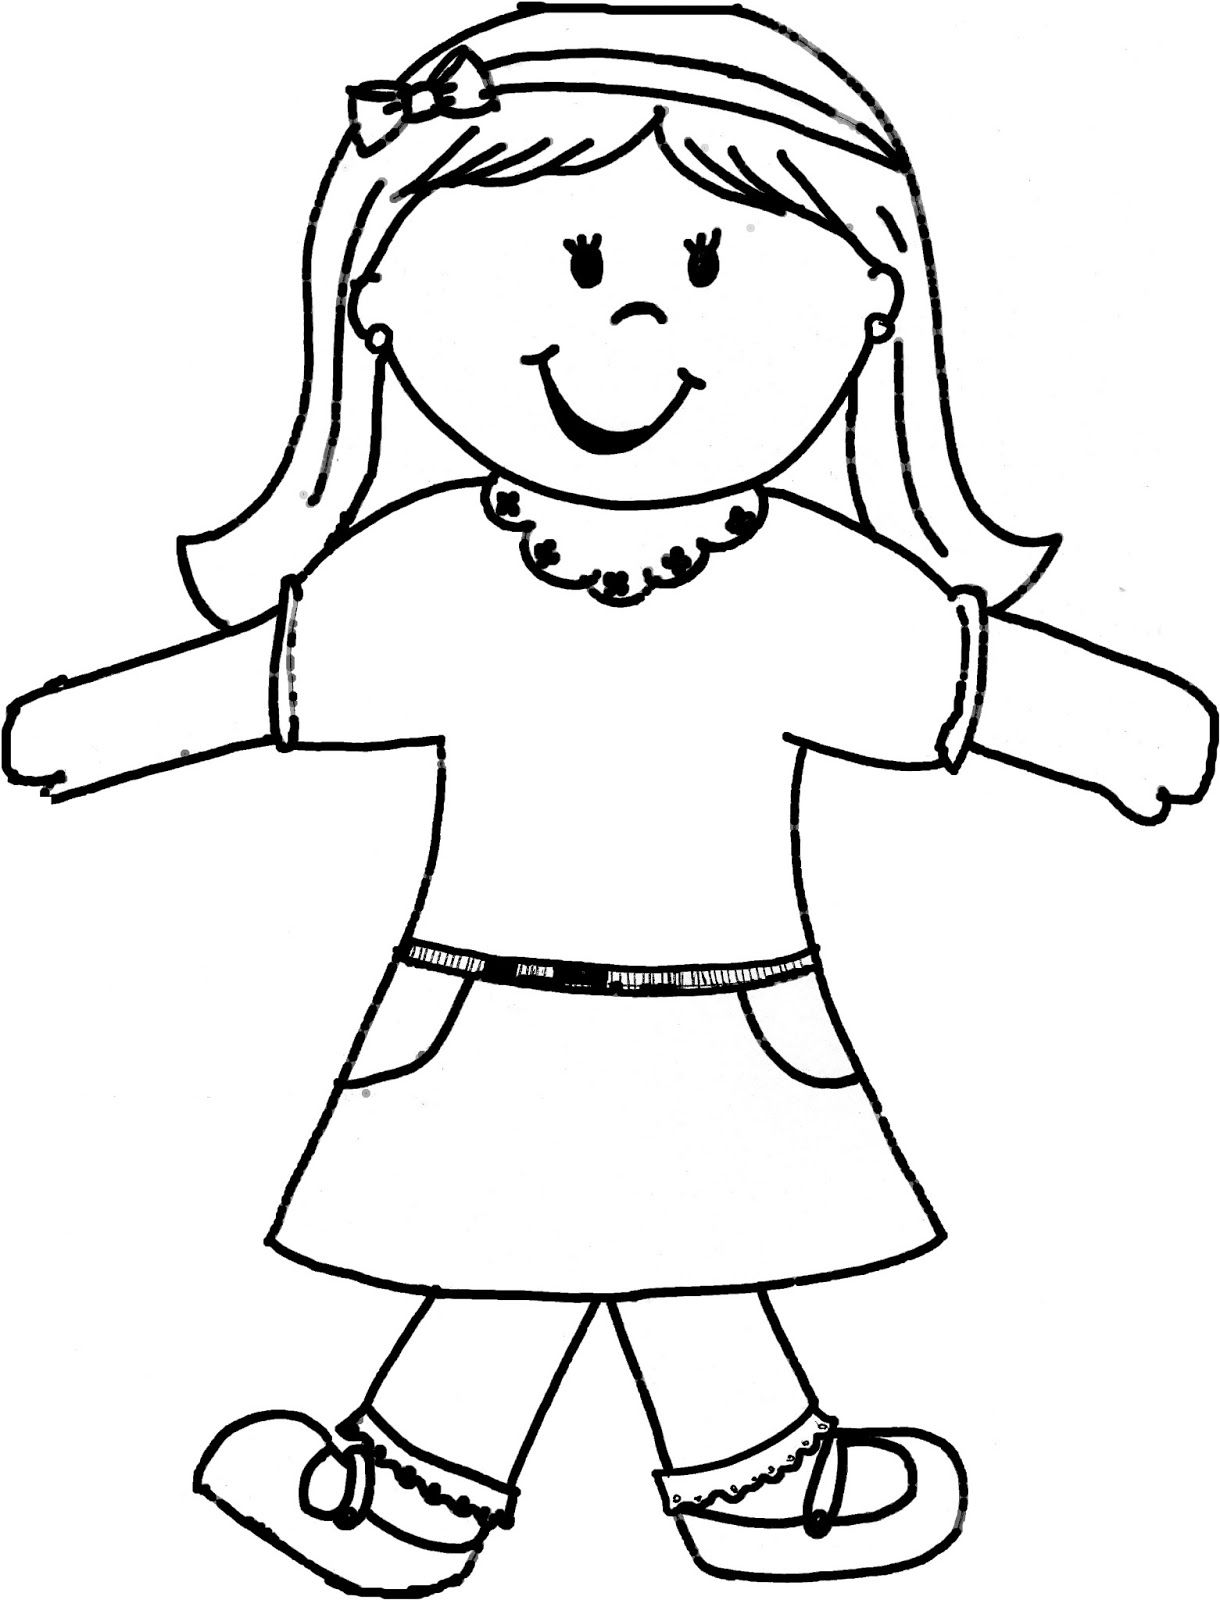 Flat Stacie For Girls Flat Stanley Flat Stanley Template Flat